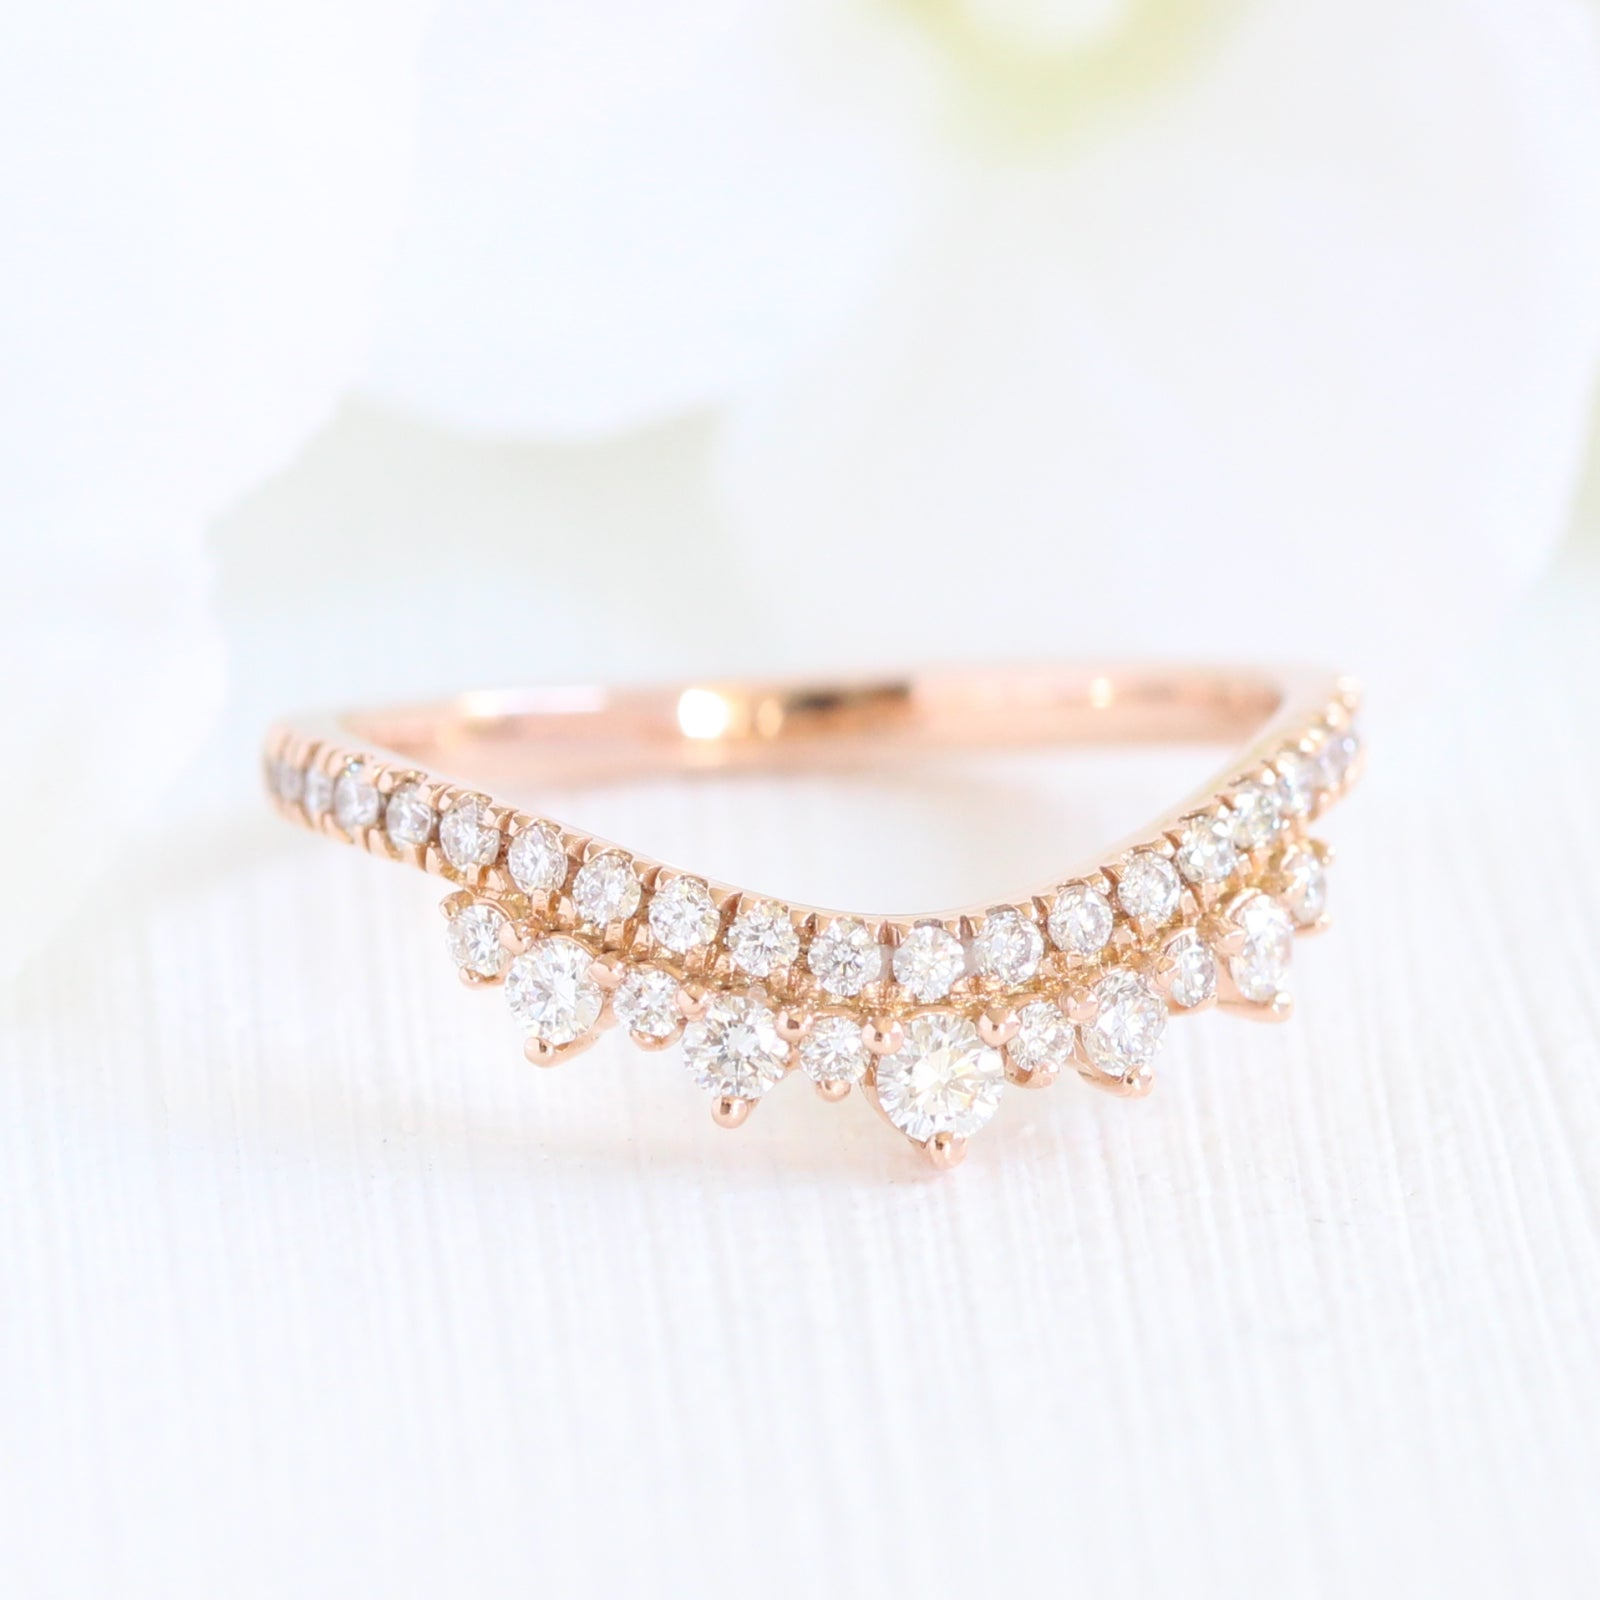 Crown Diamond Wedding Ring In Rose Gold Curved Band La More Design